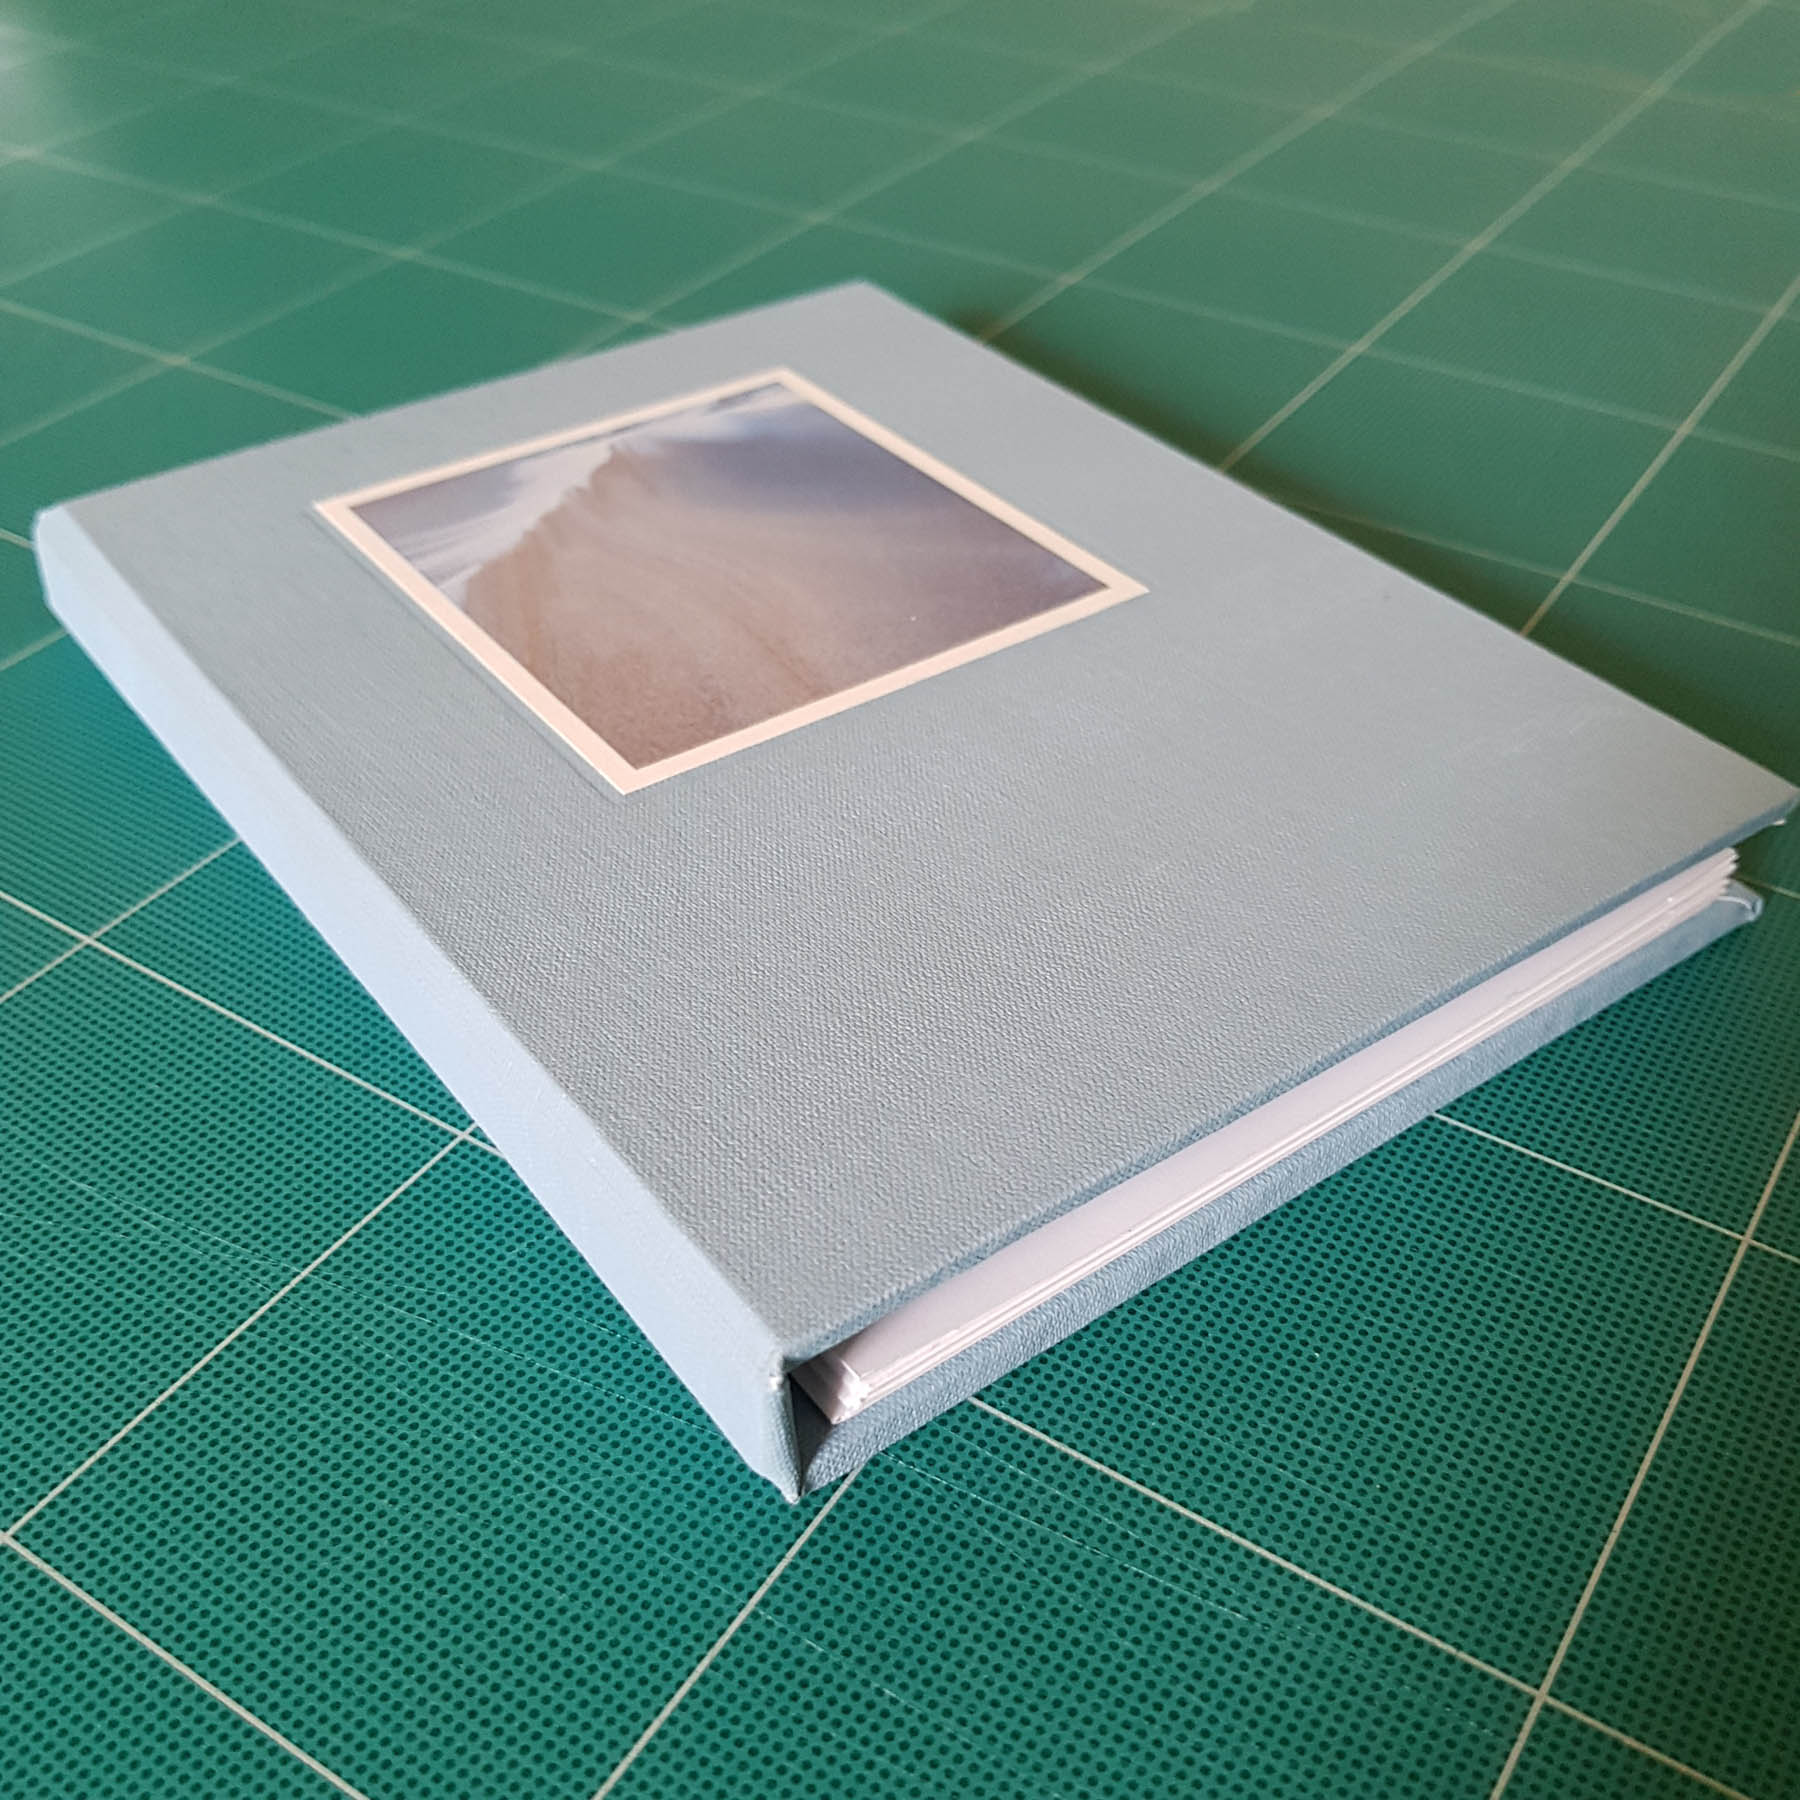 Frosted Sands book cover